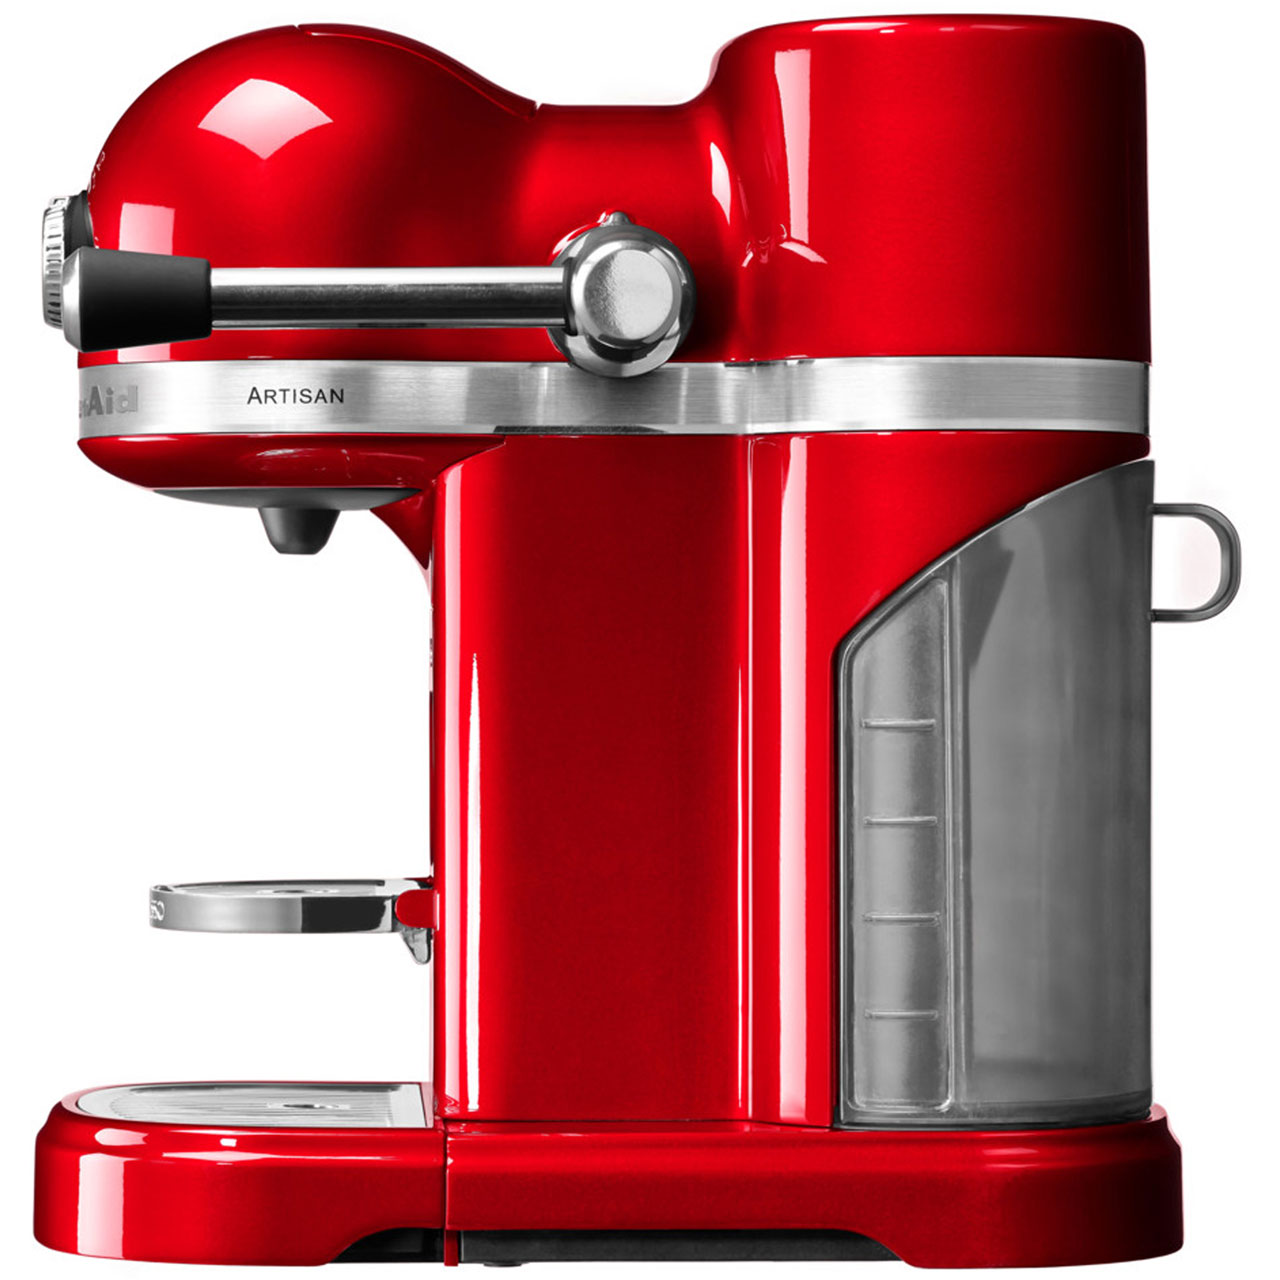 5kes0504bobbk Nespresso By Kitchenaid Machine Aocom